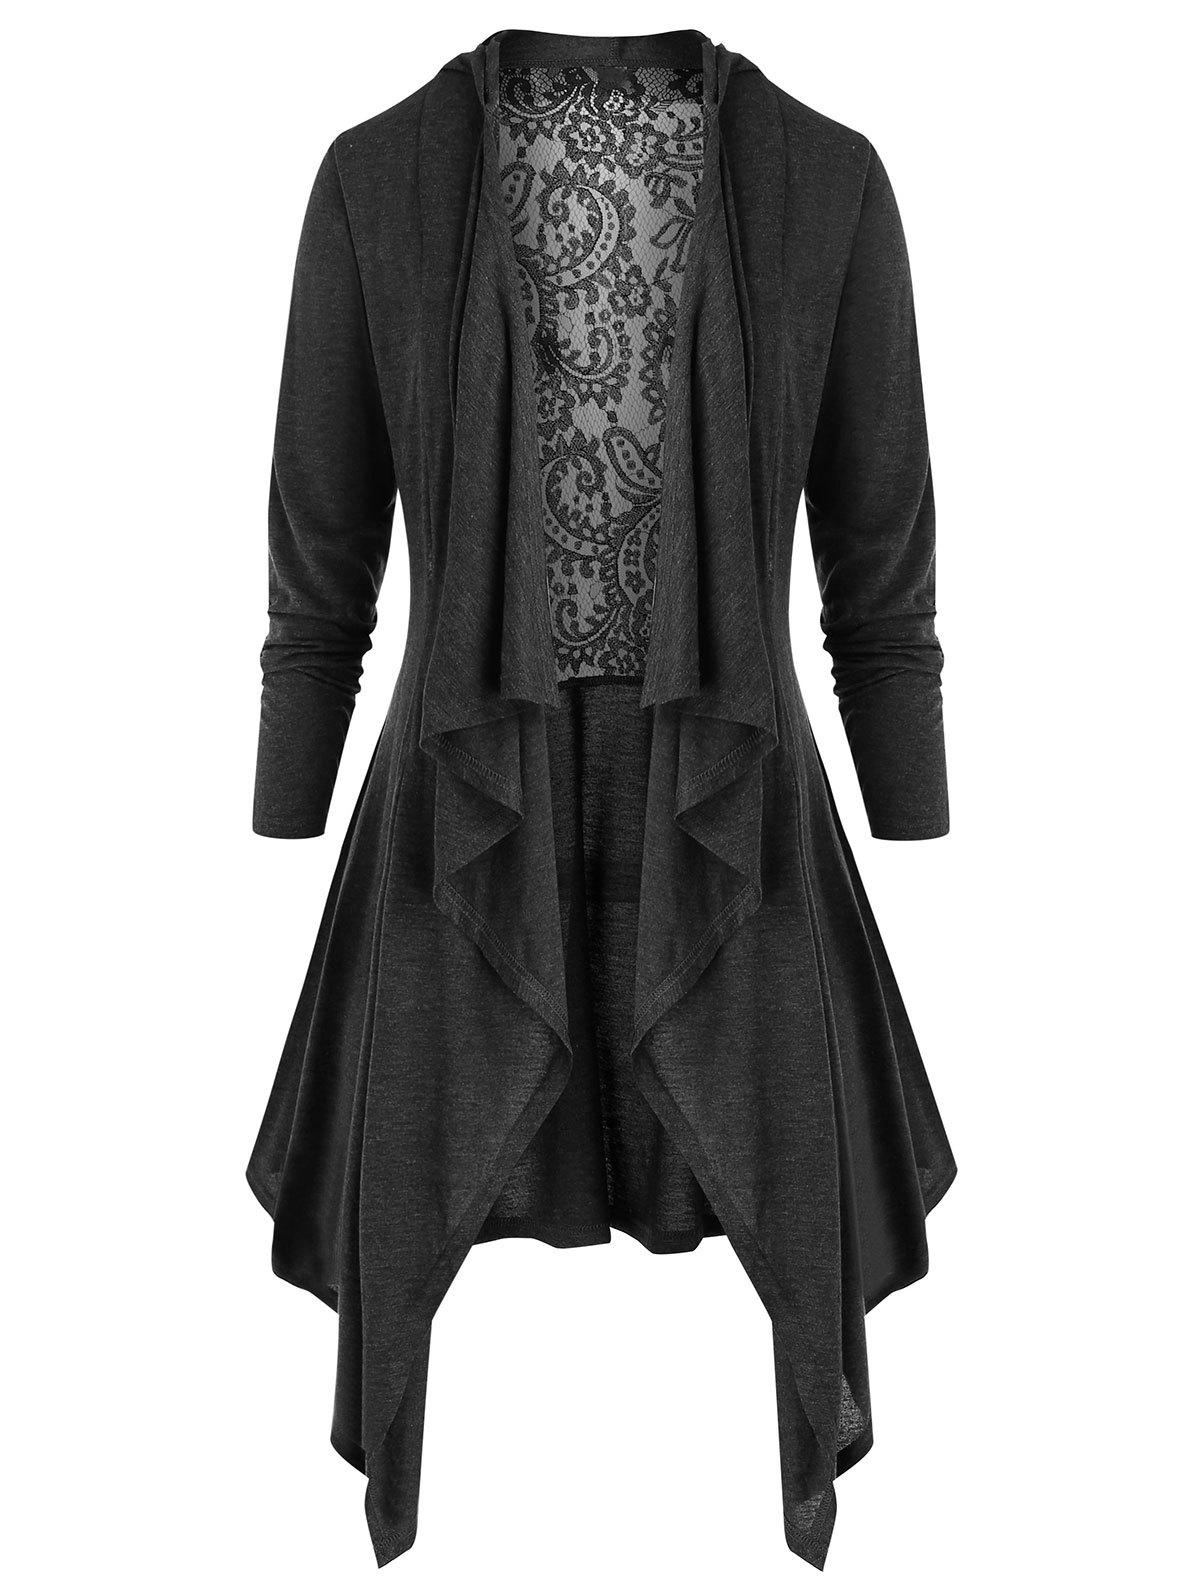 Plus Size Lace Insert Hooded Asymmetric Cardigan - BATTLESHIP GRAY L